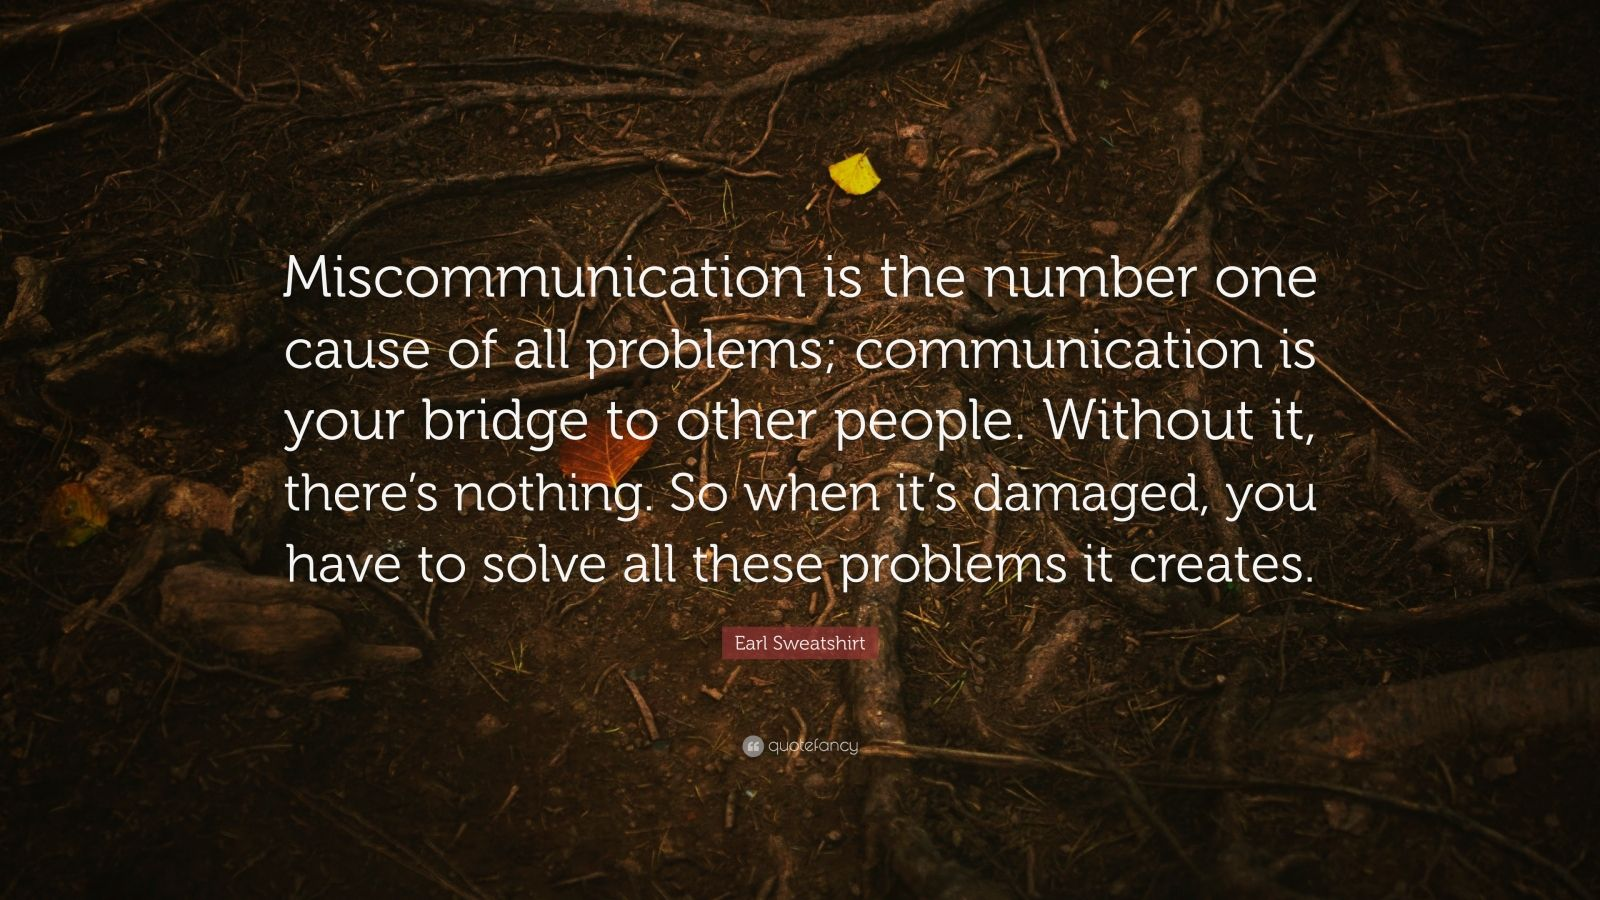 an analysis of the nothing and the issue of miscommunication Read this essay on analysis of intercultural miscommunication with nothing but flat words description of the communication issue context.